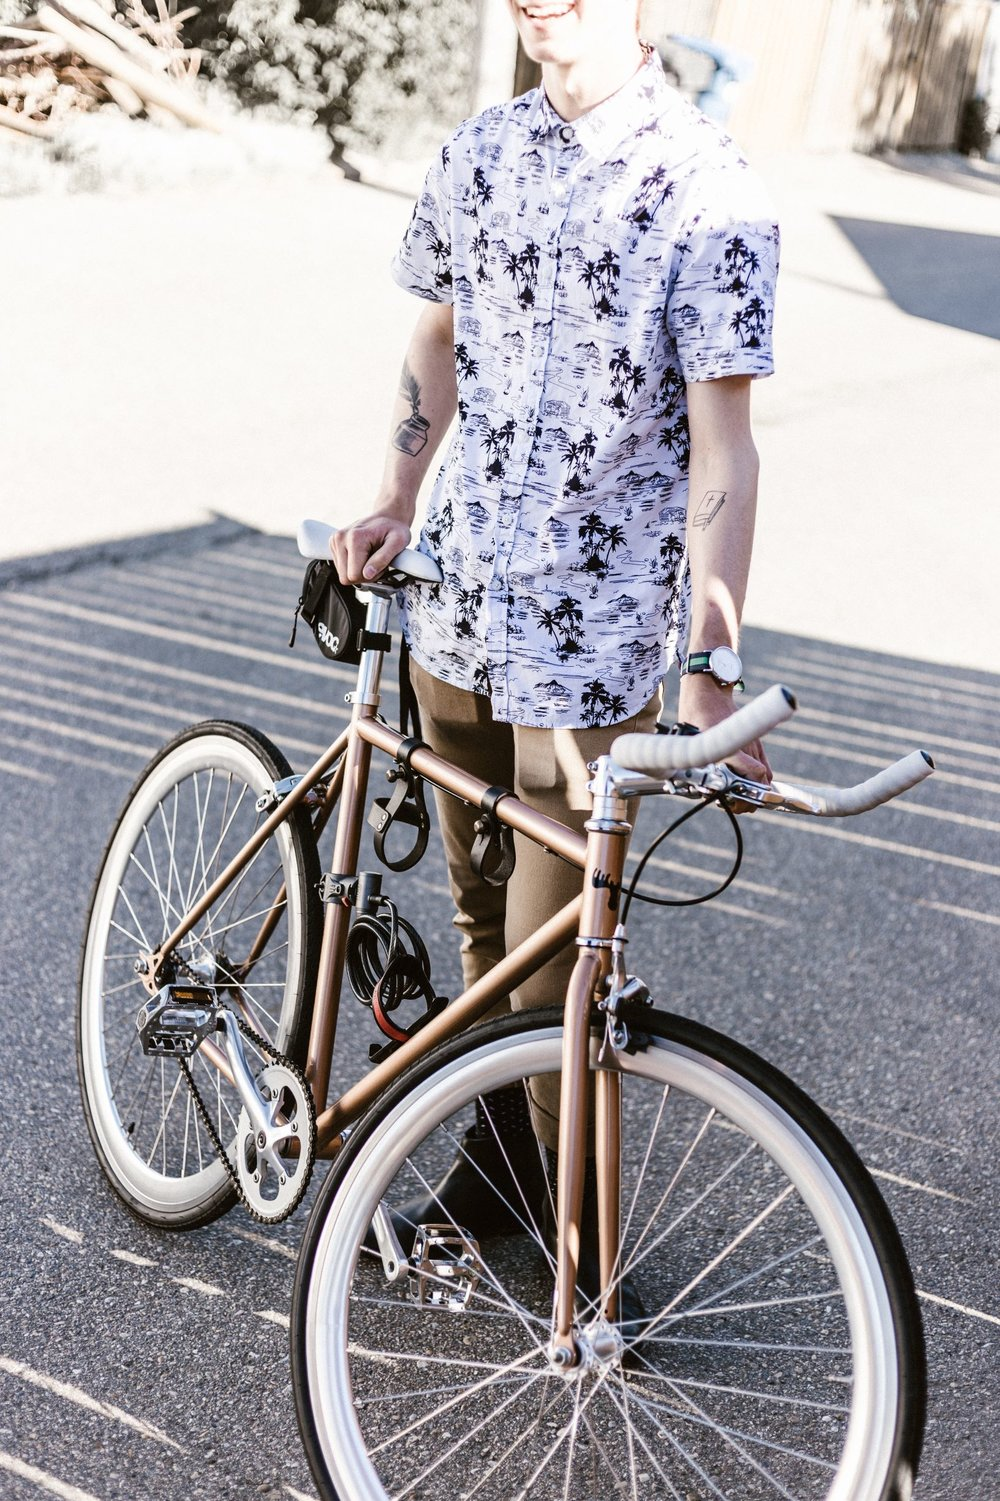 Rich in vibrant color and artful patterns, Aloha shirts are a men's fashion staple in Hawaii and many designers proudly manufacture their pieces in Hawaii. Photo by Priscilla Du Preez on Unsplash.